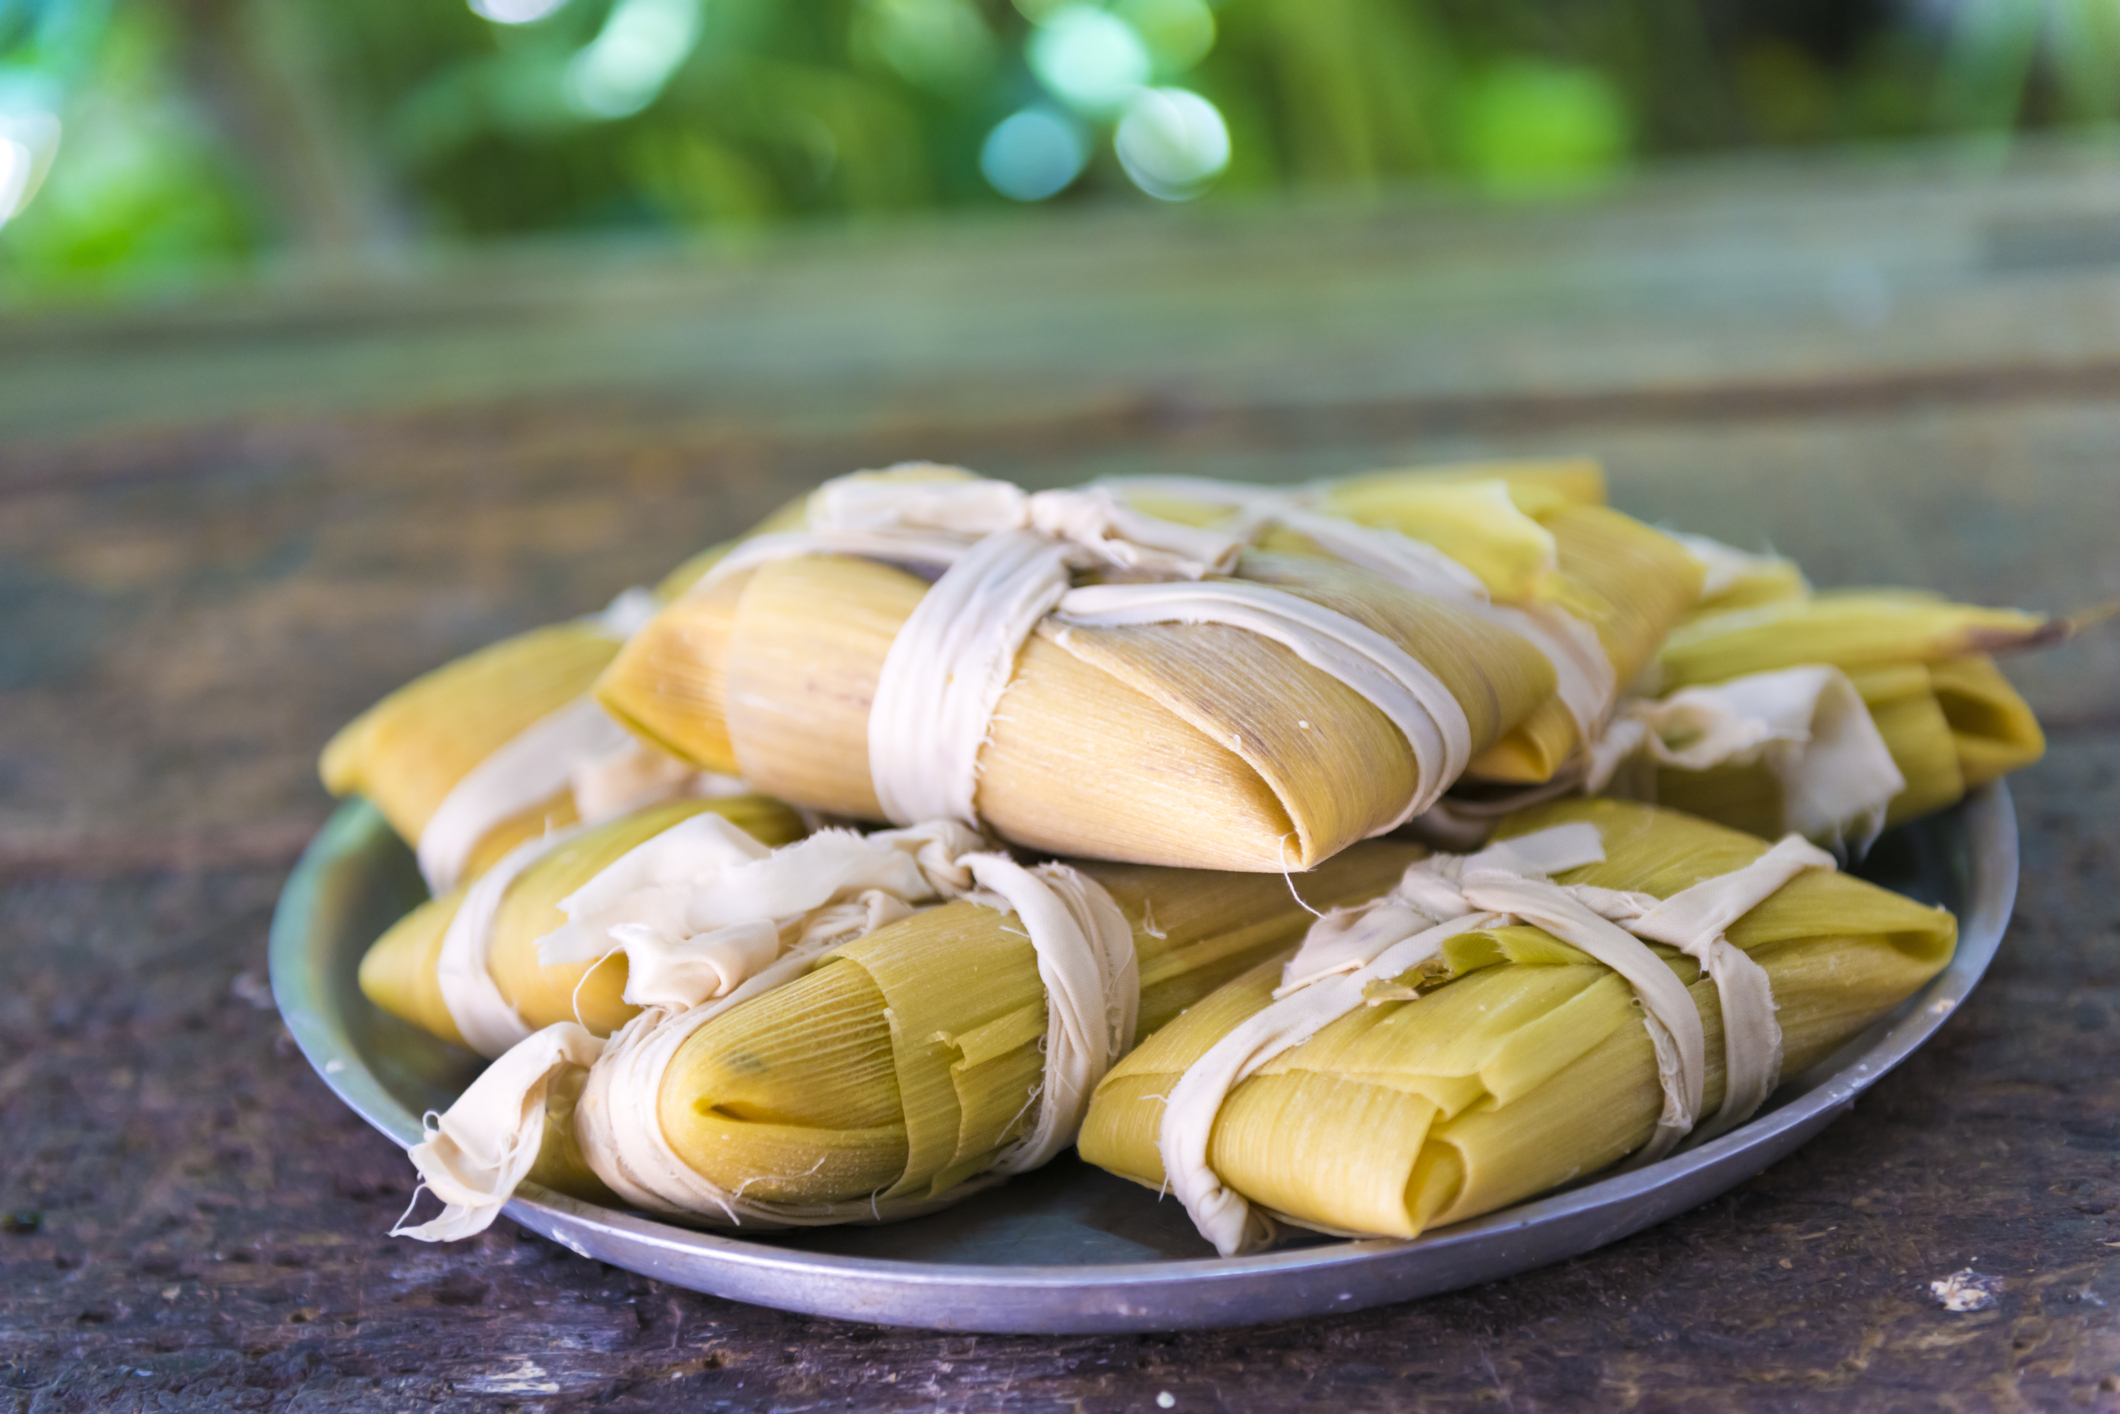 Cuban cuisine: traditional homemade tamal a popular Latin American dish